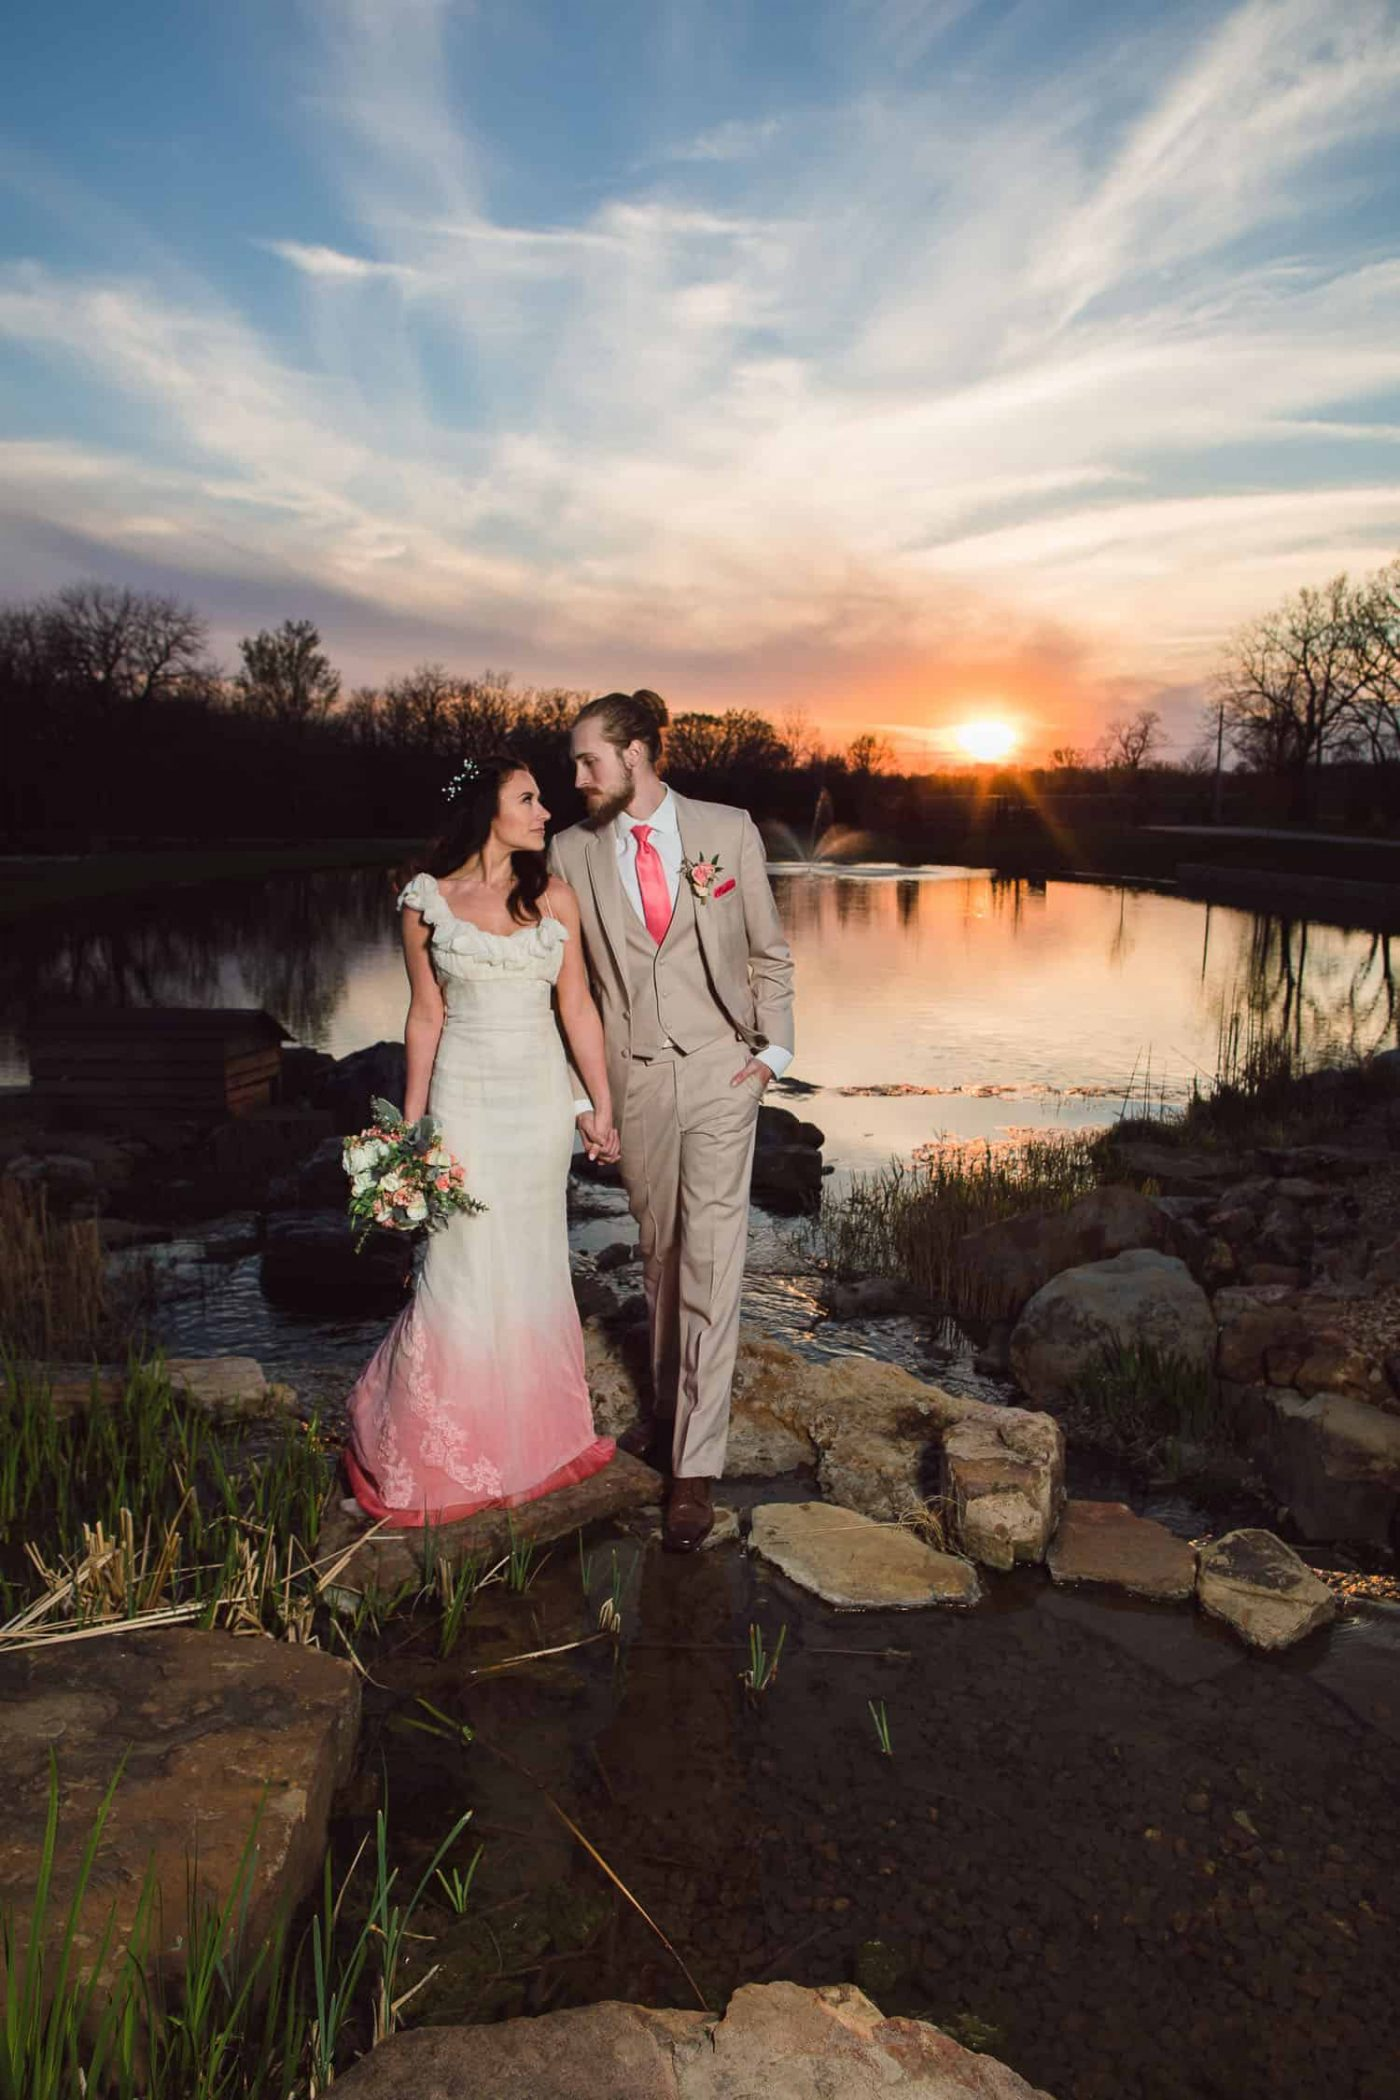 Beautiful sunset after a wedding ceremony at the Bowery wedding venue in Spring Hill Kansas by Kansas City wedding photographer